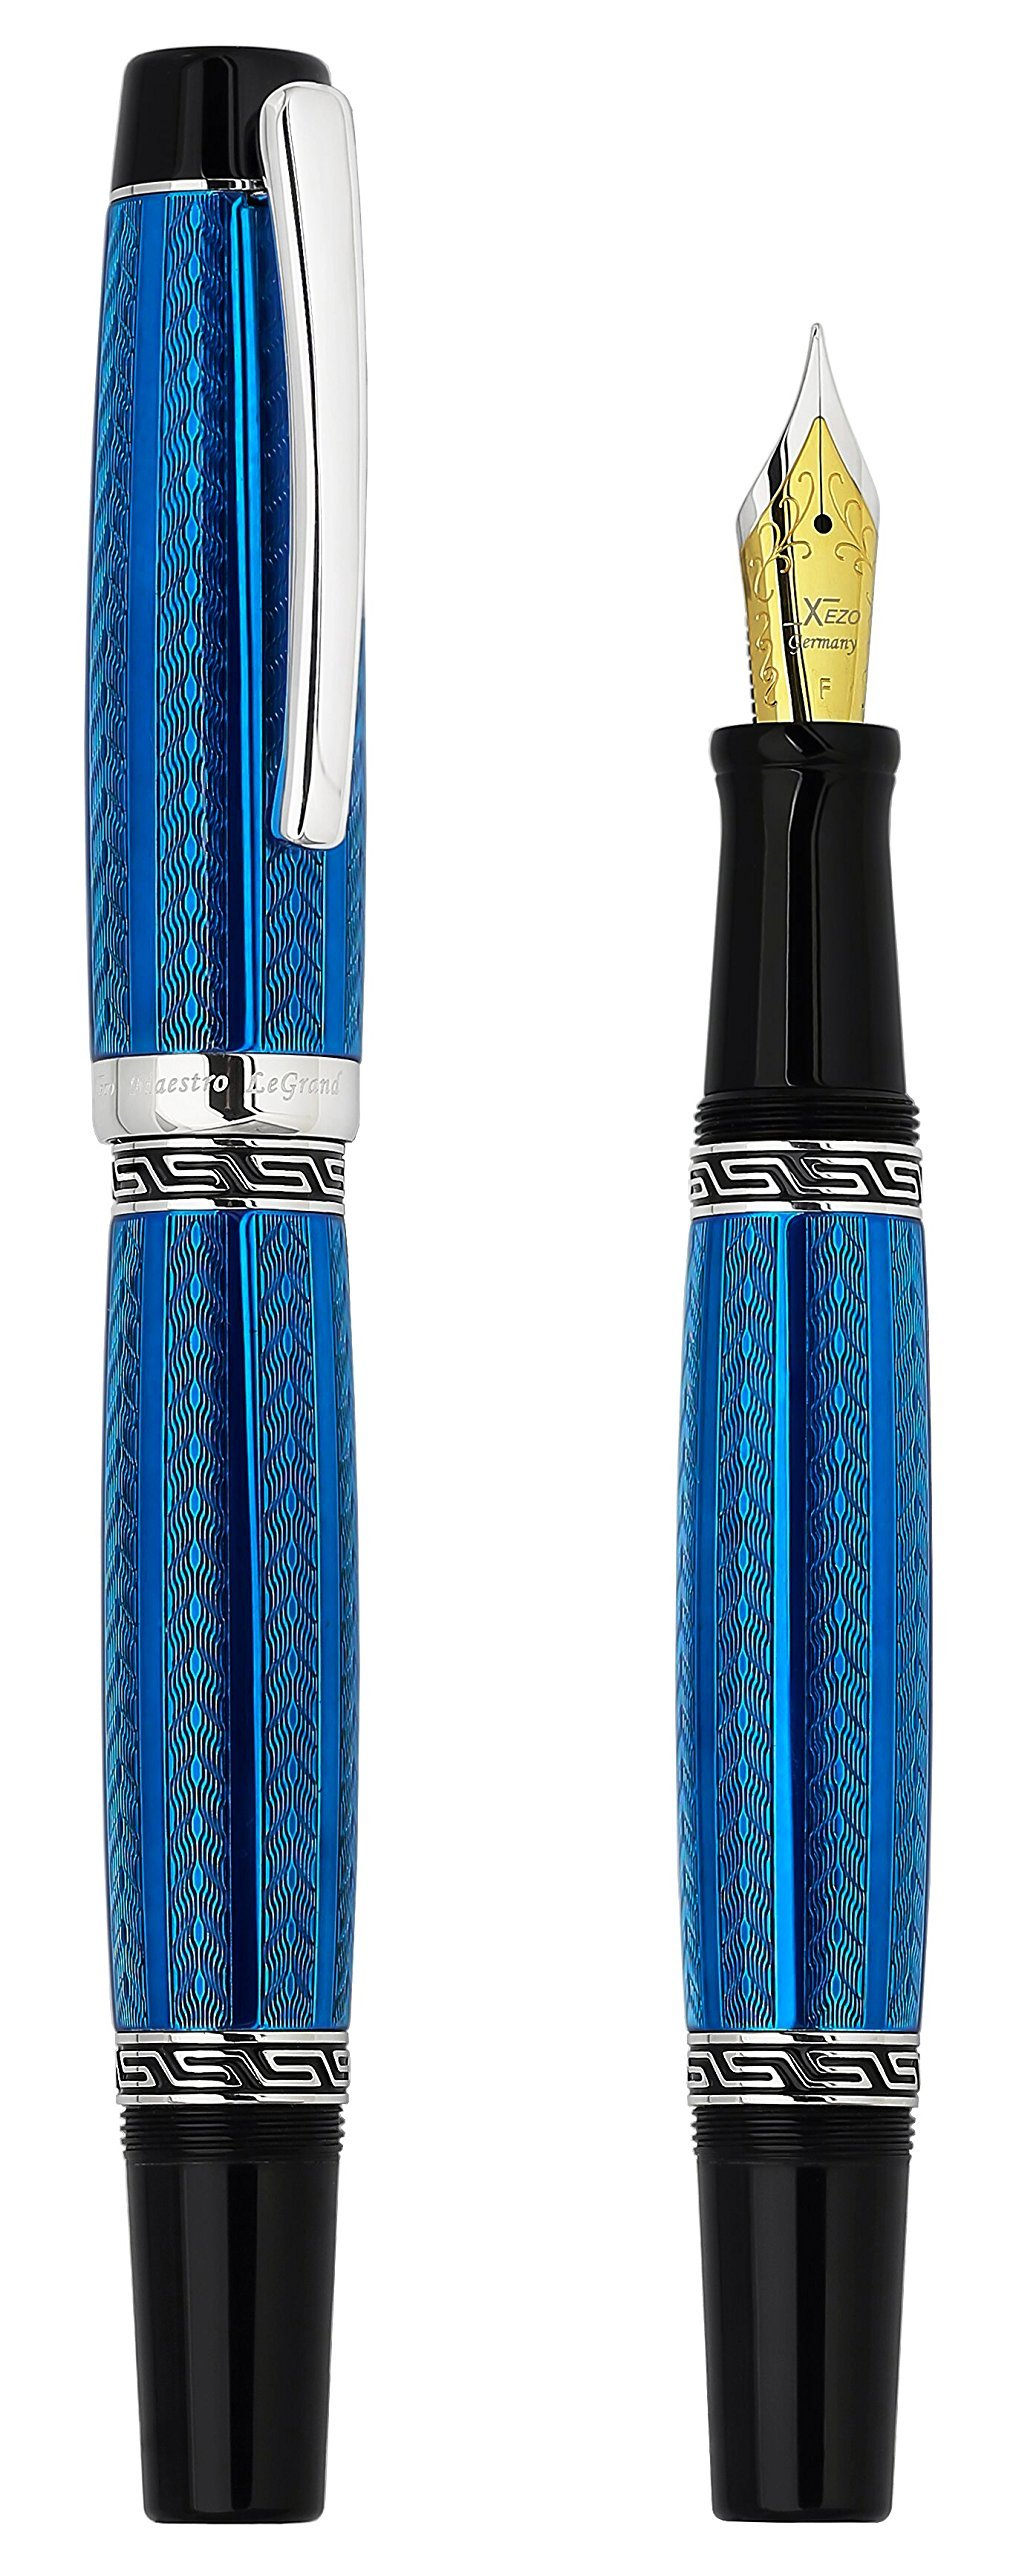 Xezo Maestro LeGrand Diamond Cut, Lacquered, Platinum Plated Fine Point Fountain Pen in Tanzanite Color